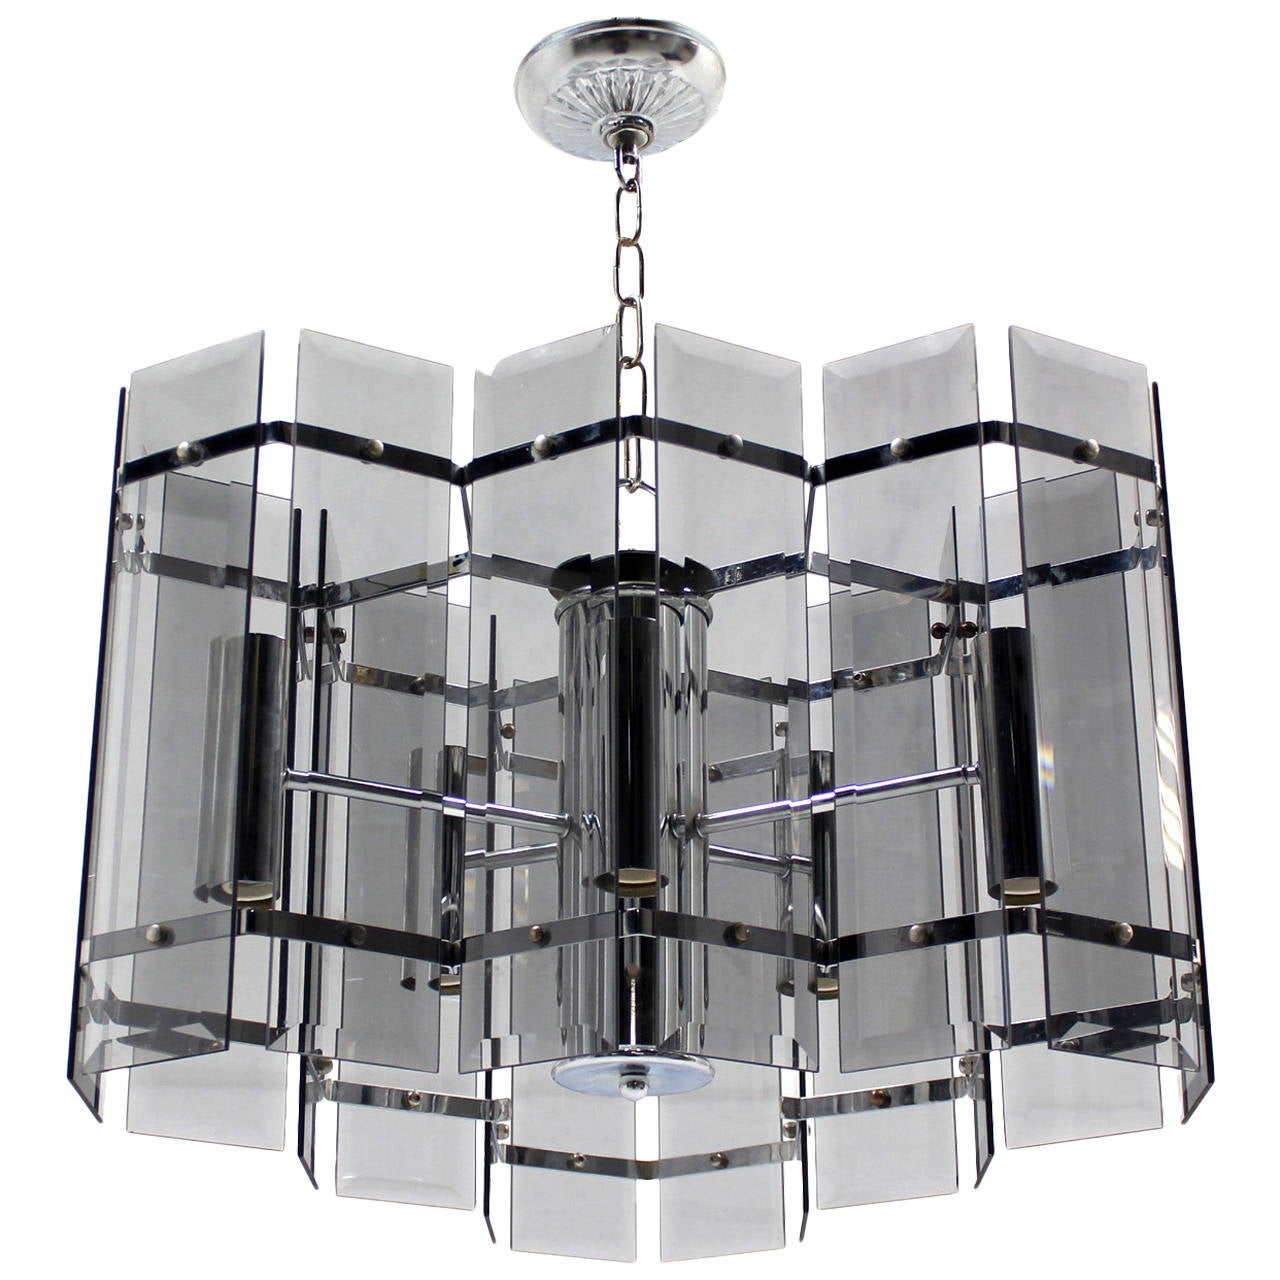 Mid century modern chrome and smoked glass light fixture for Mid century modern pendant light fixtures